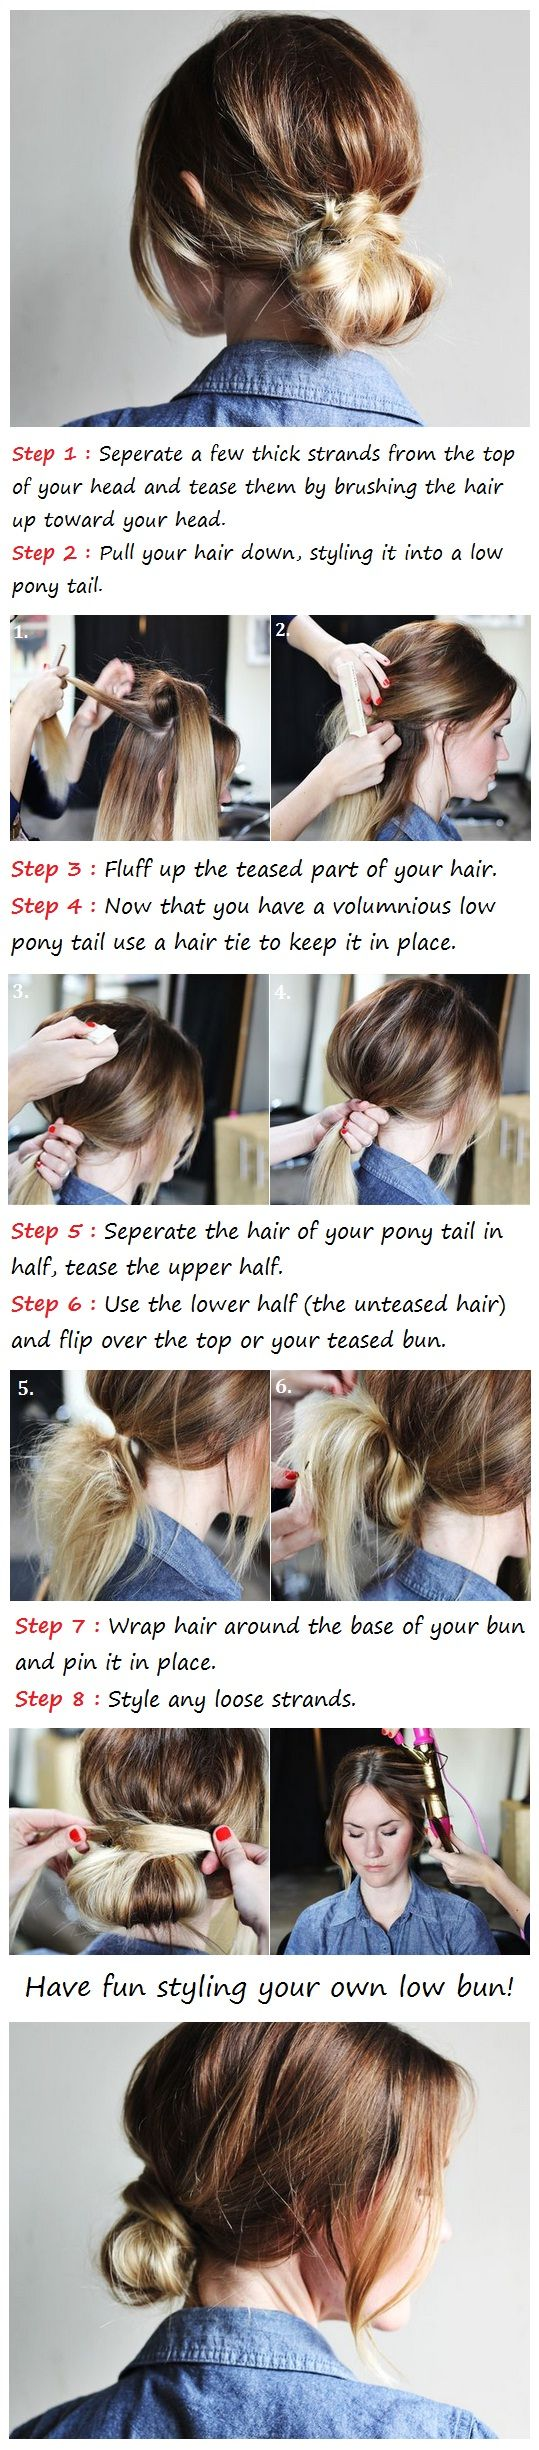 Low Bun Tutorial